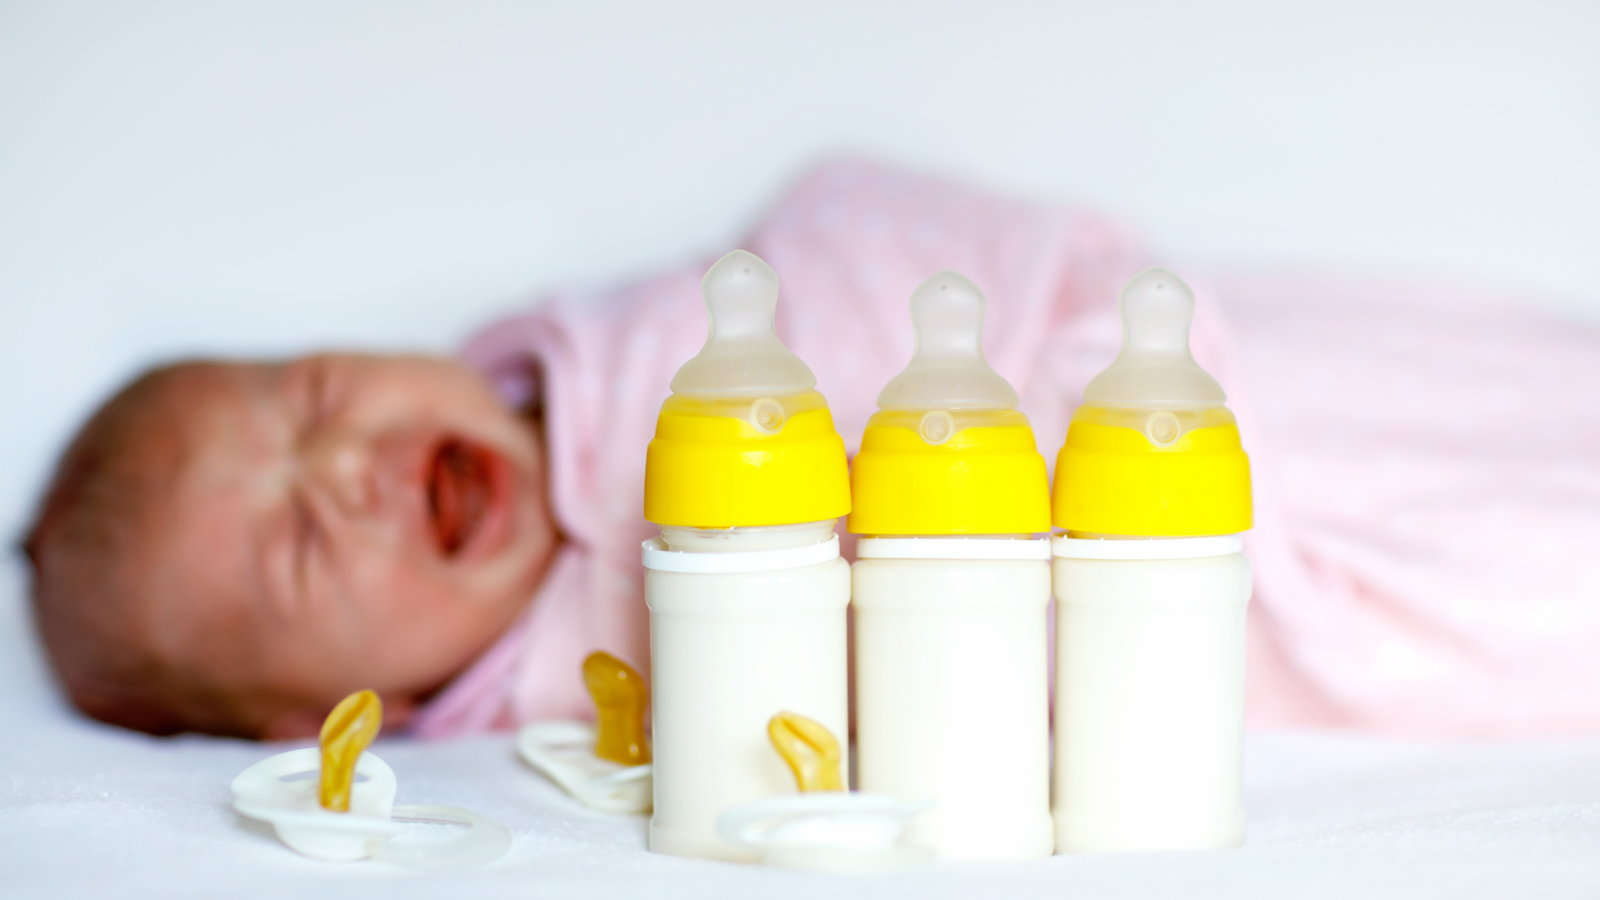 crying baby with bottles close by